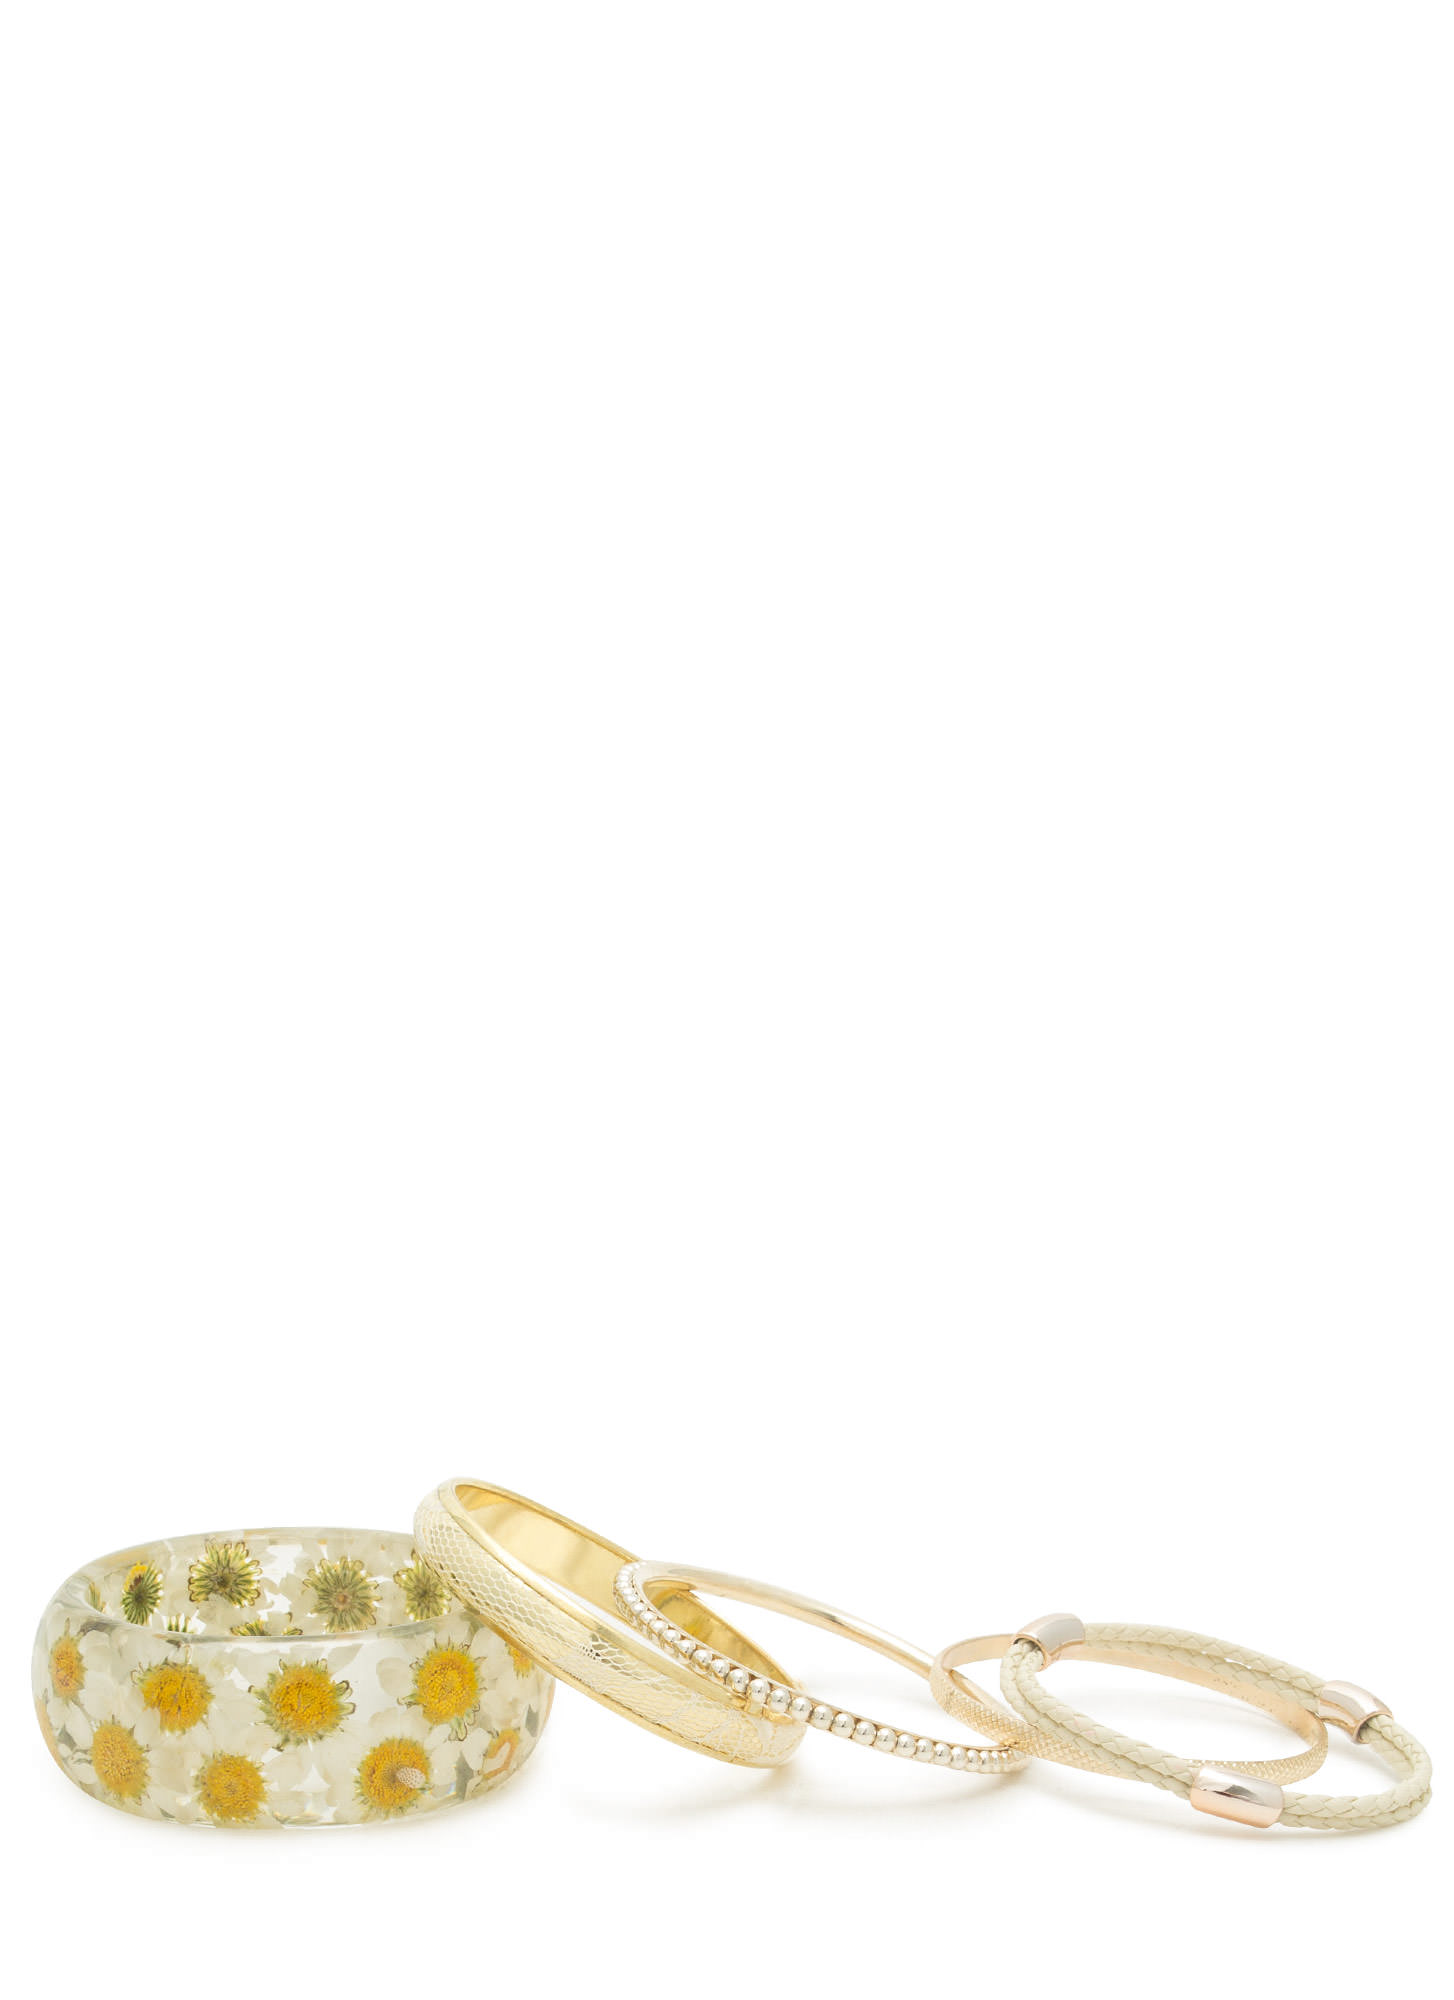 Daisy Dreams Bangle Set CLEARMULTI